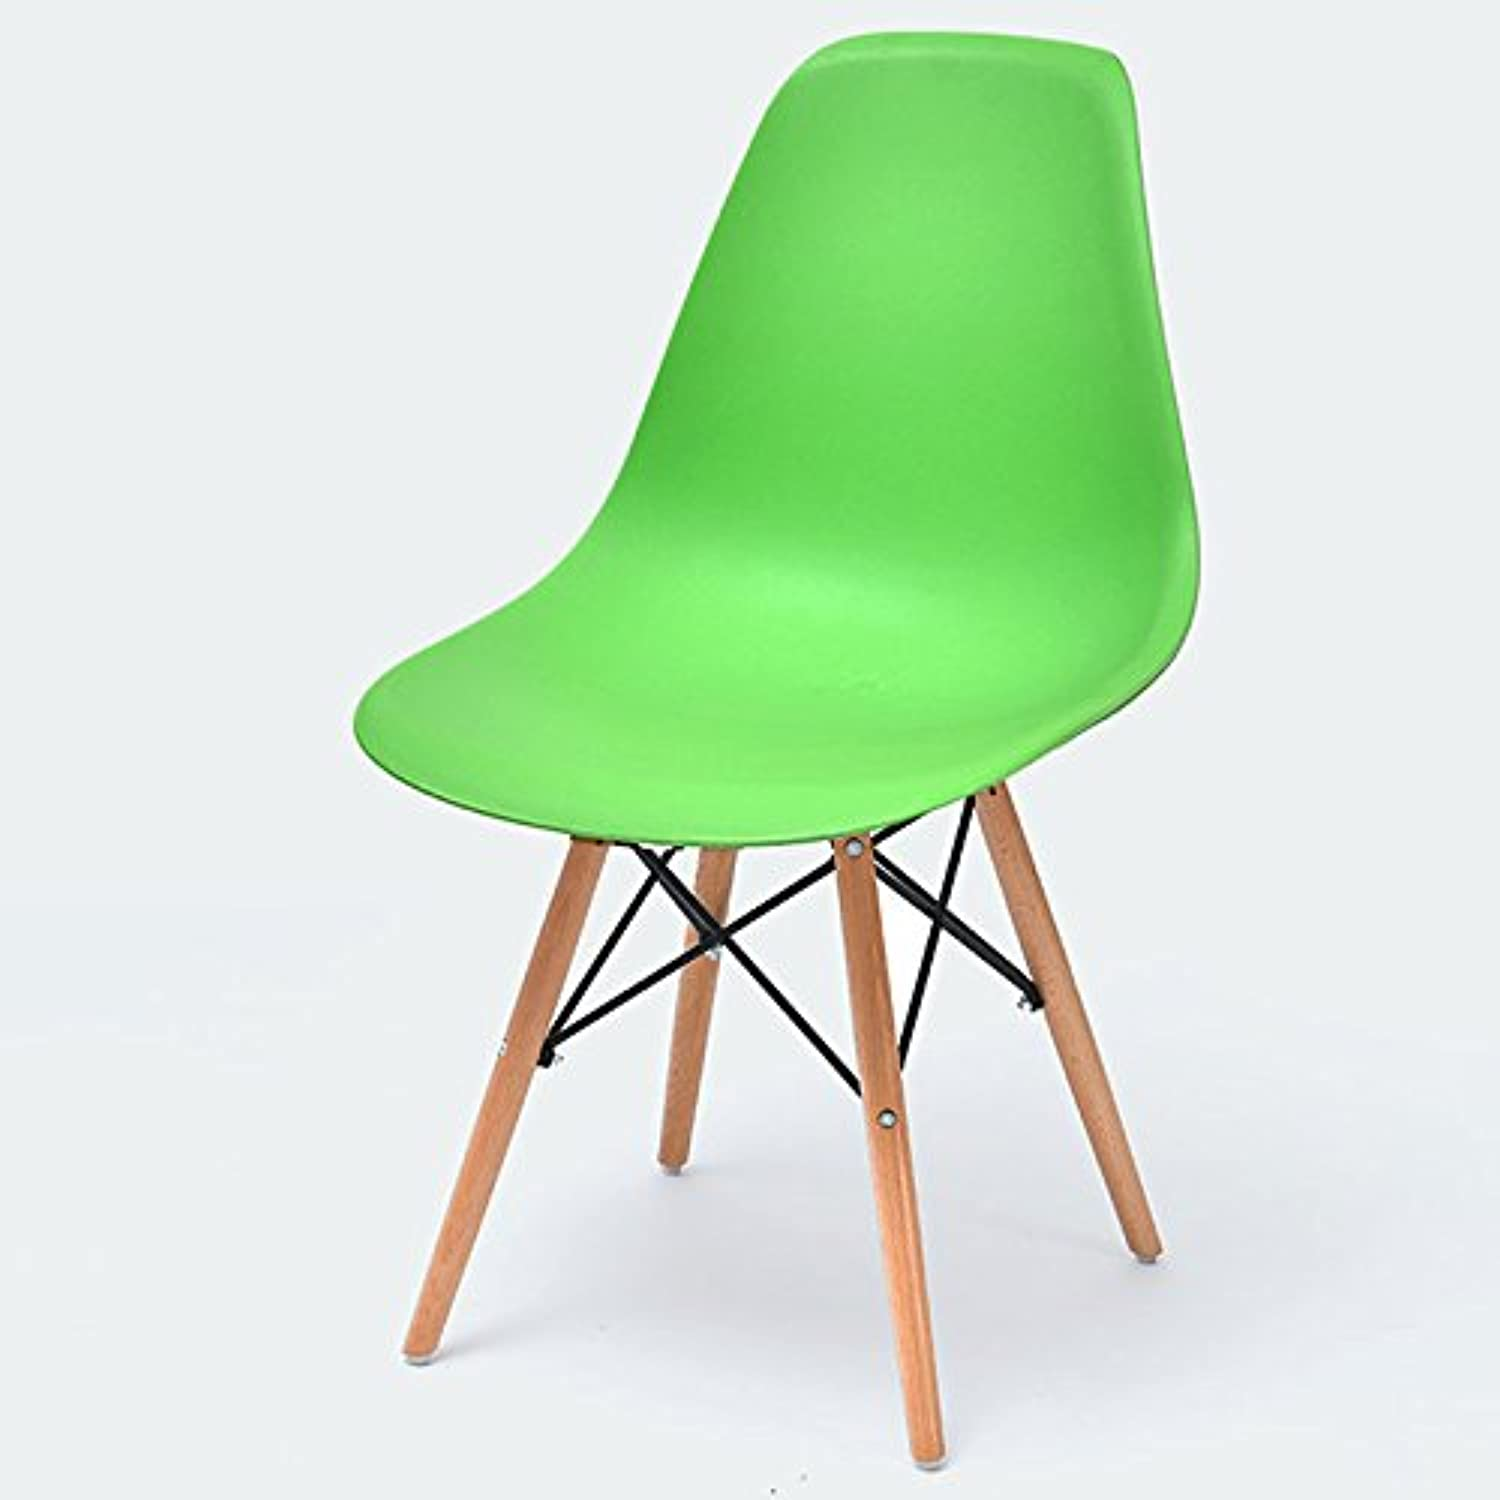 Modern Minimalist Backrest Chair, Home Desk Chair Lazy Creative Chair Nordic Dining Chair ( color   Green )